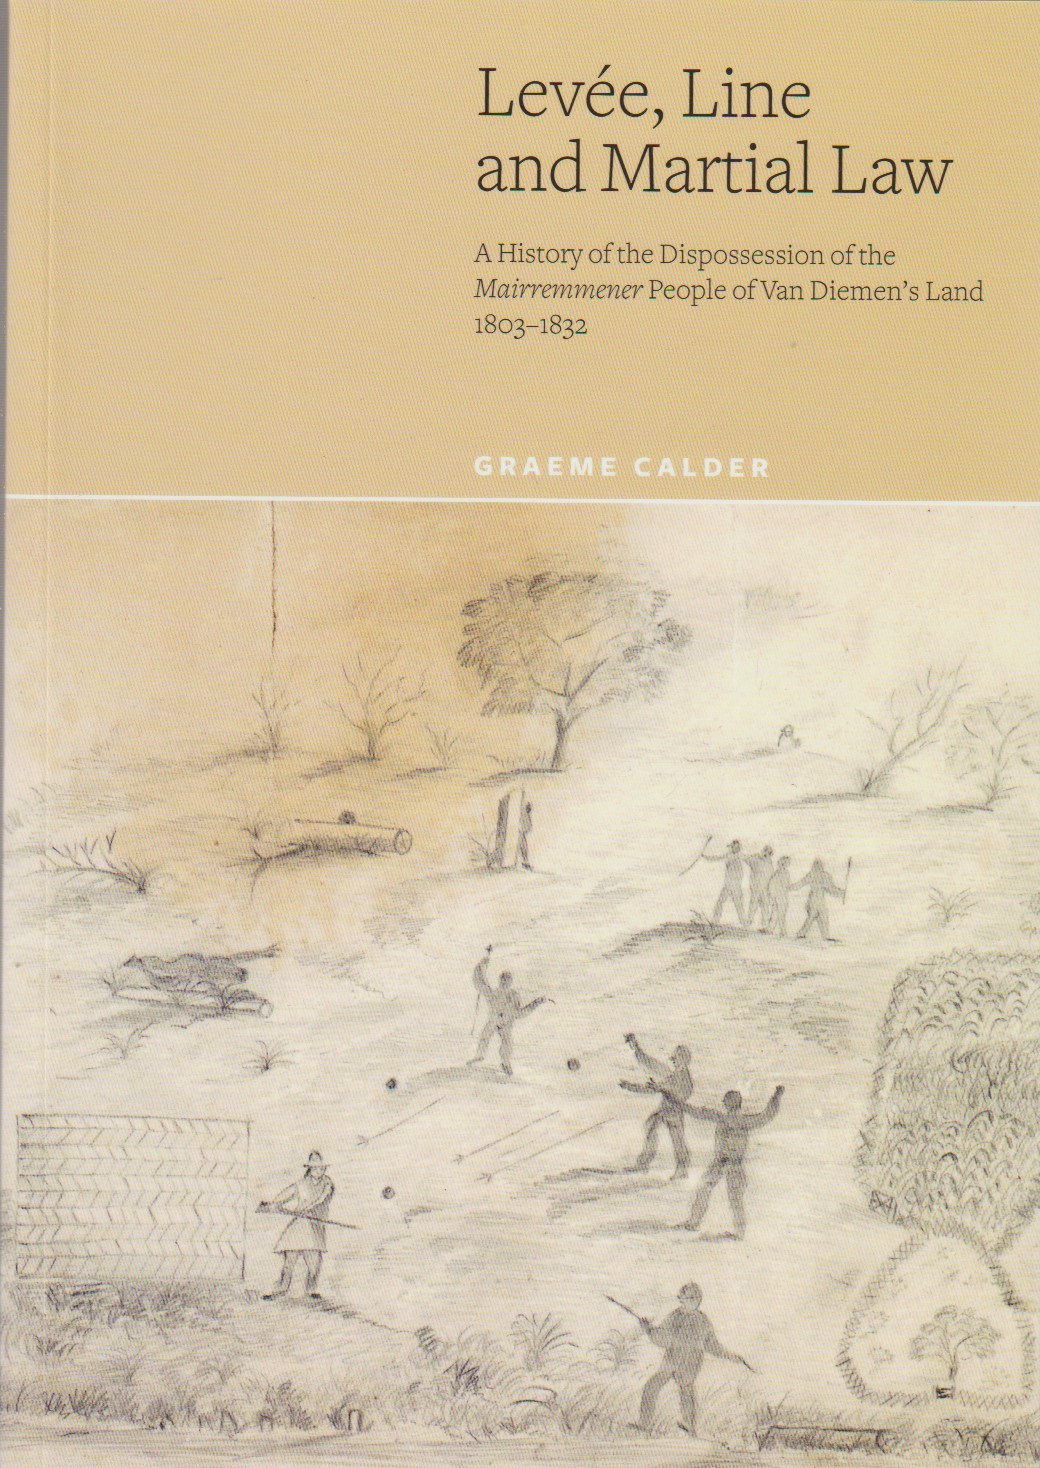 Levee, Line and Martial Law - a history of the dispossession of the Mairremmener people of Van Diemen's Land 1803-1832